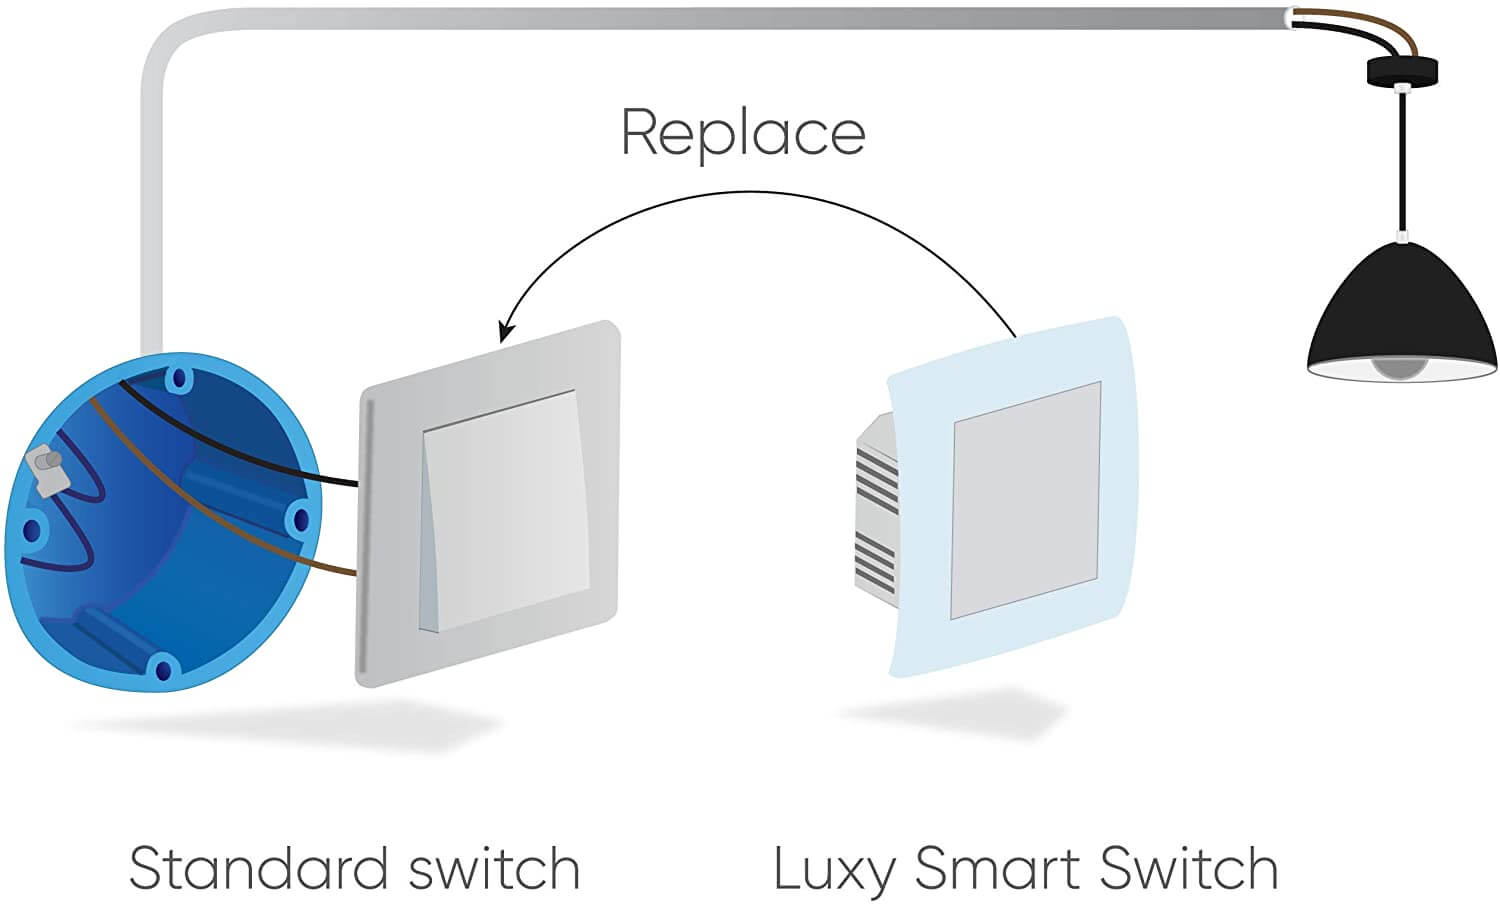 Qubino LUXY Smart Switch